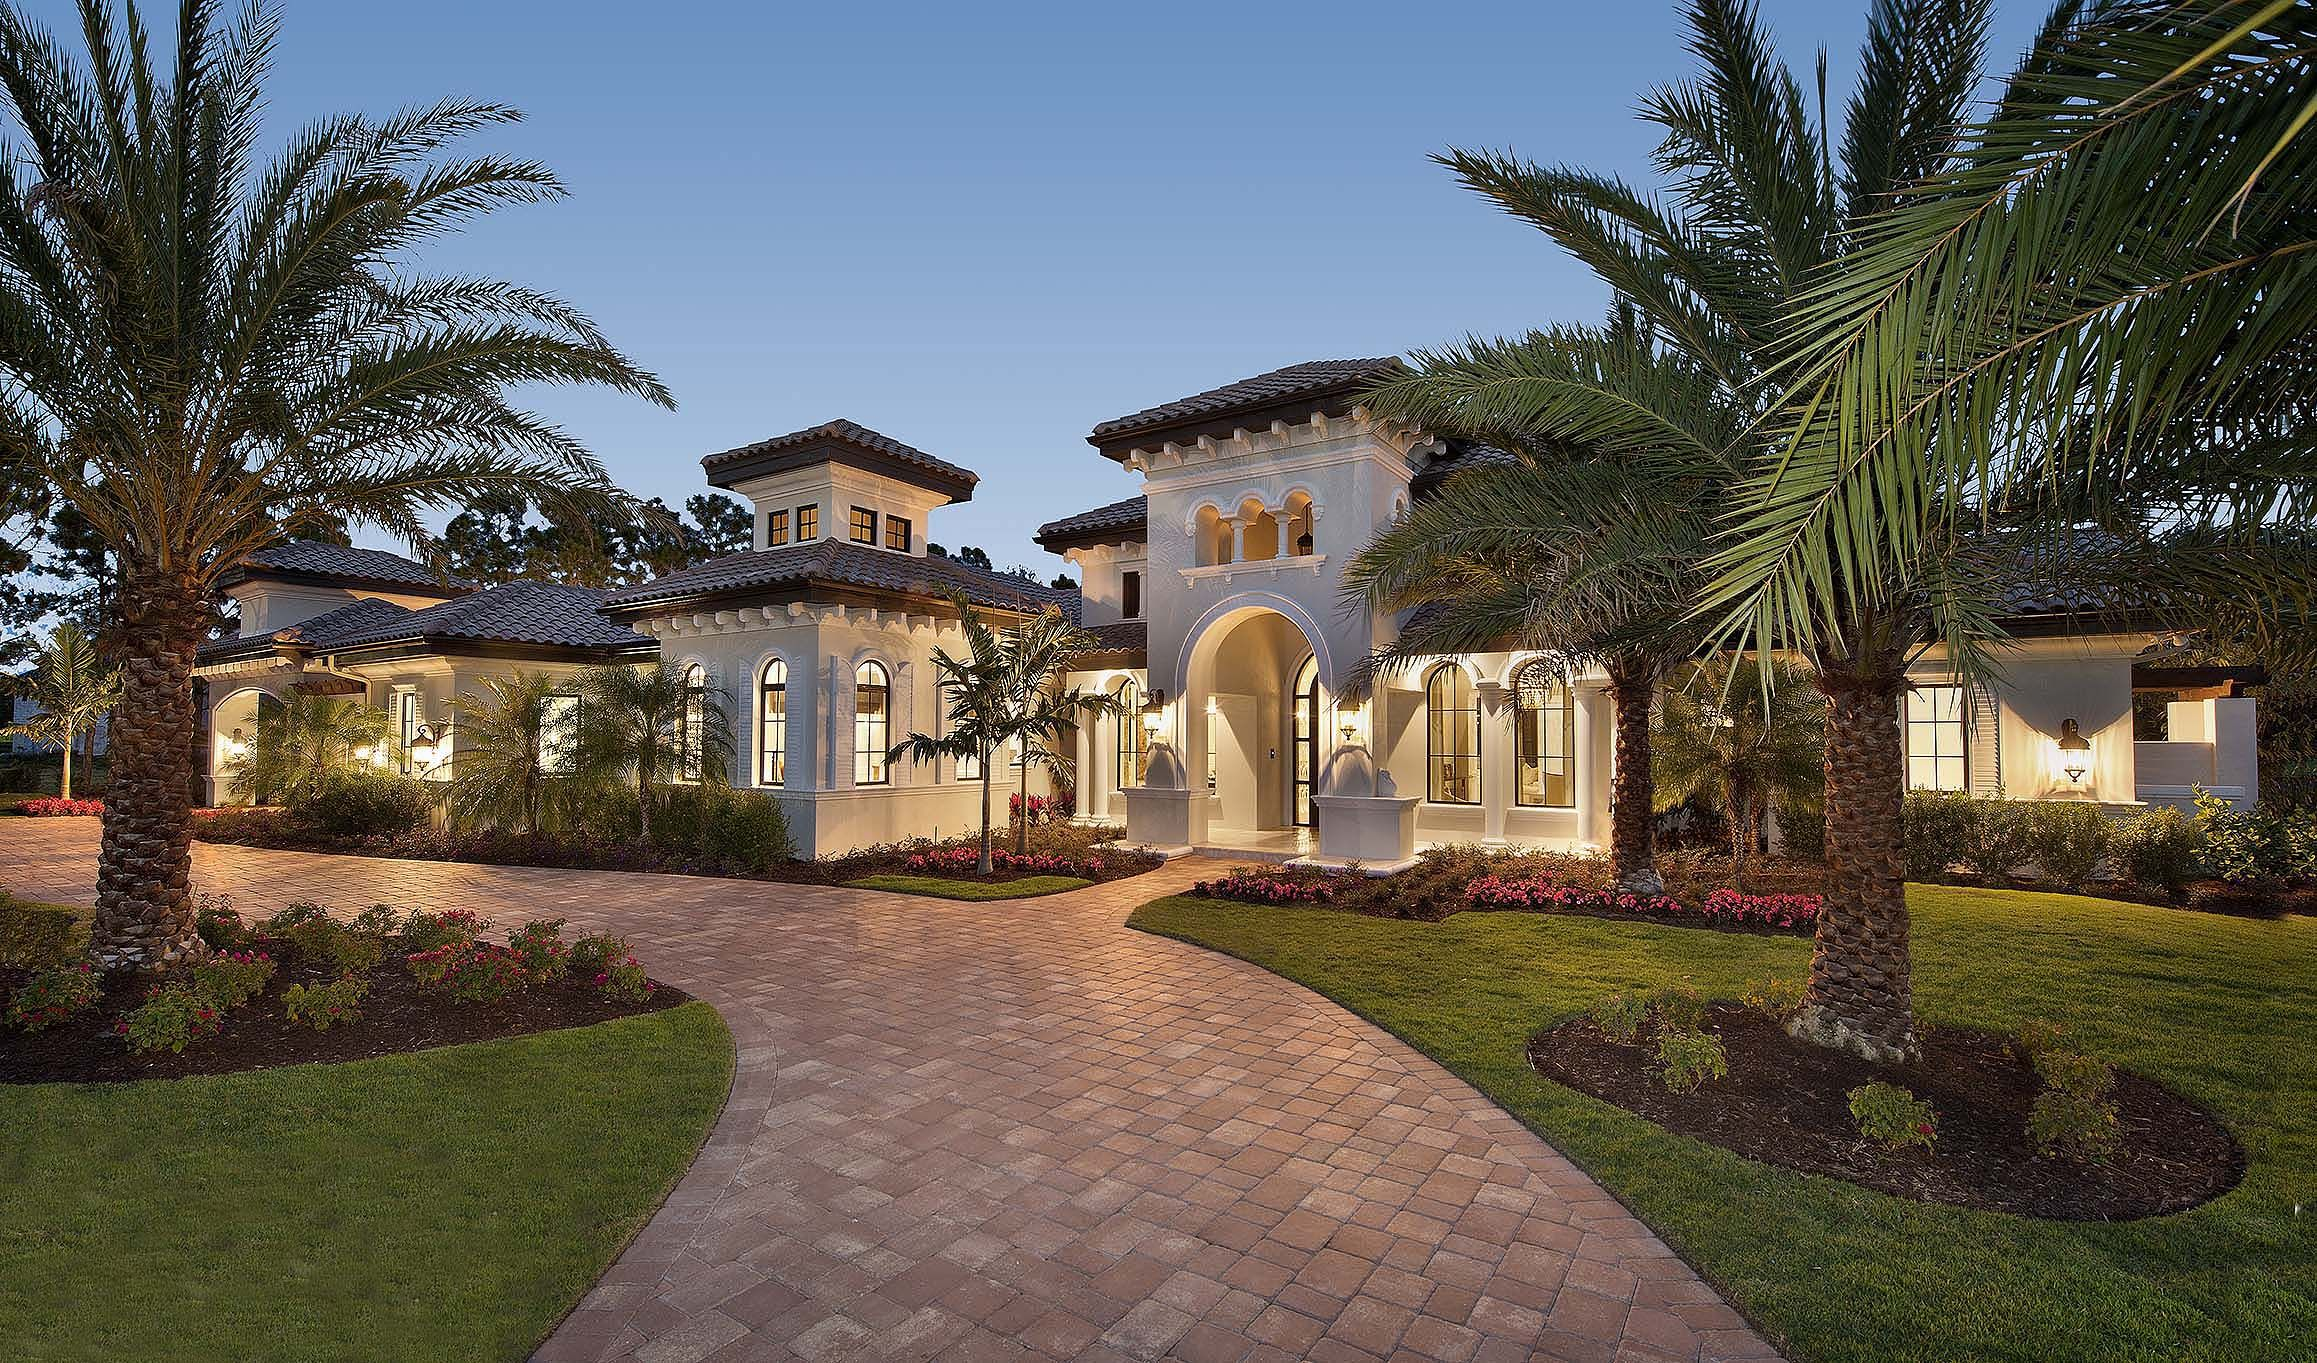 Luxury Villa with Spanish Influences  66351WE  Florida, Mediterranean, Spanish, Luxury, Photo